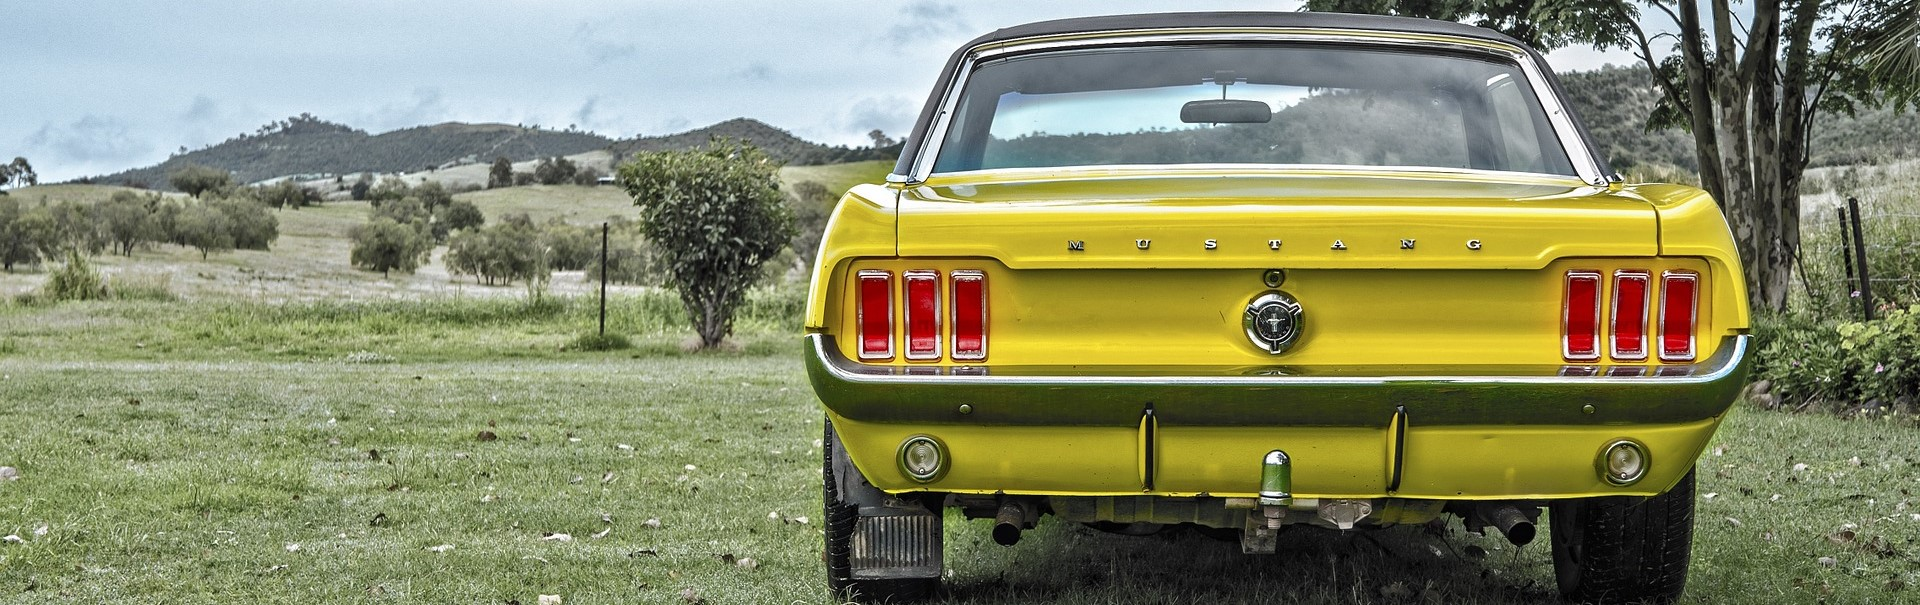 Yellow Oldtimer Mustang | Breast Cancer Car Donations